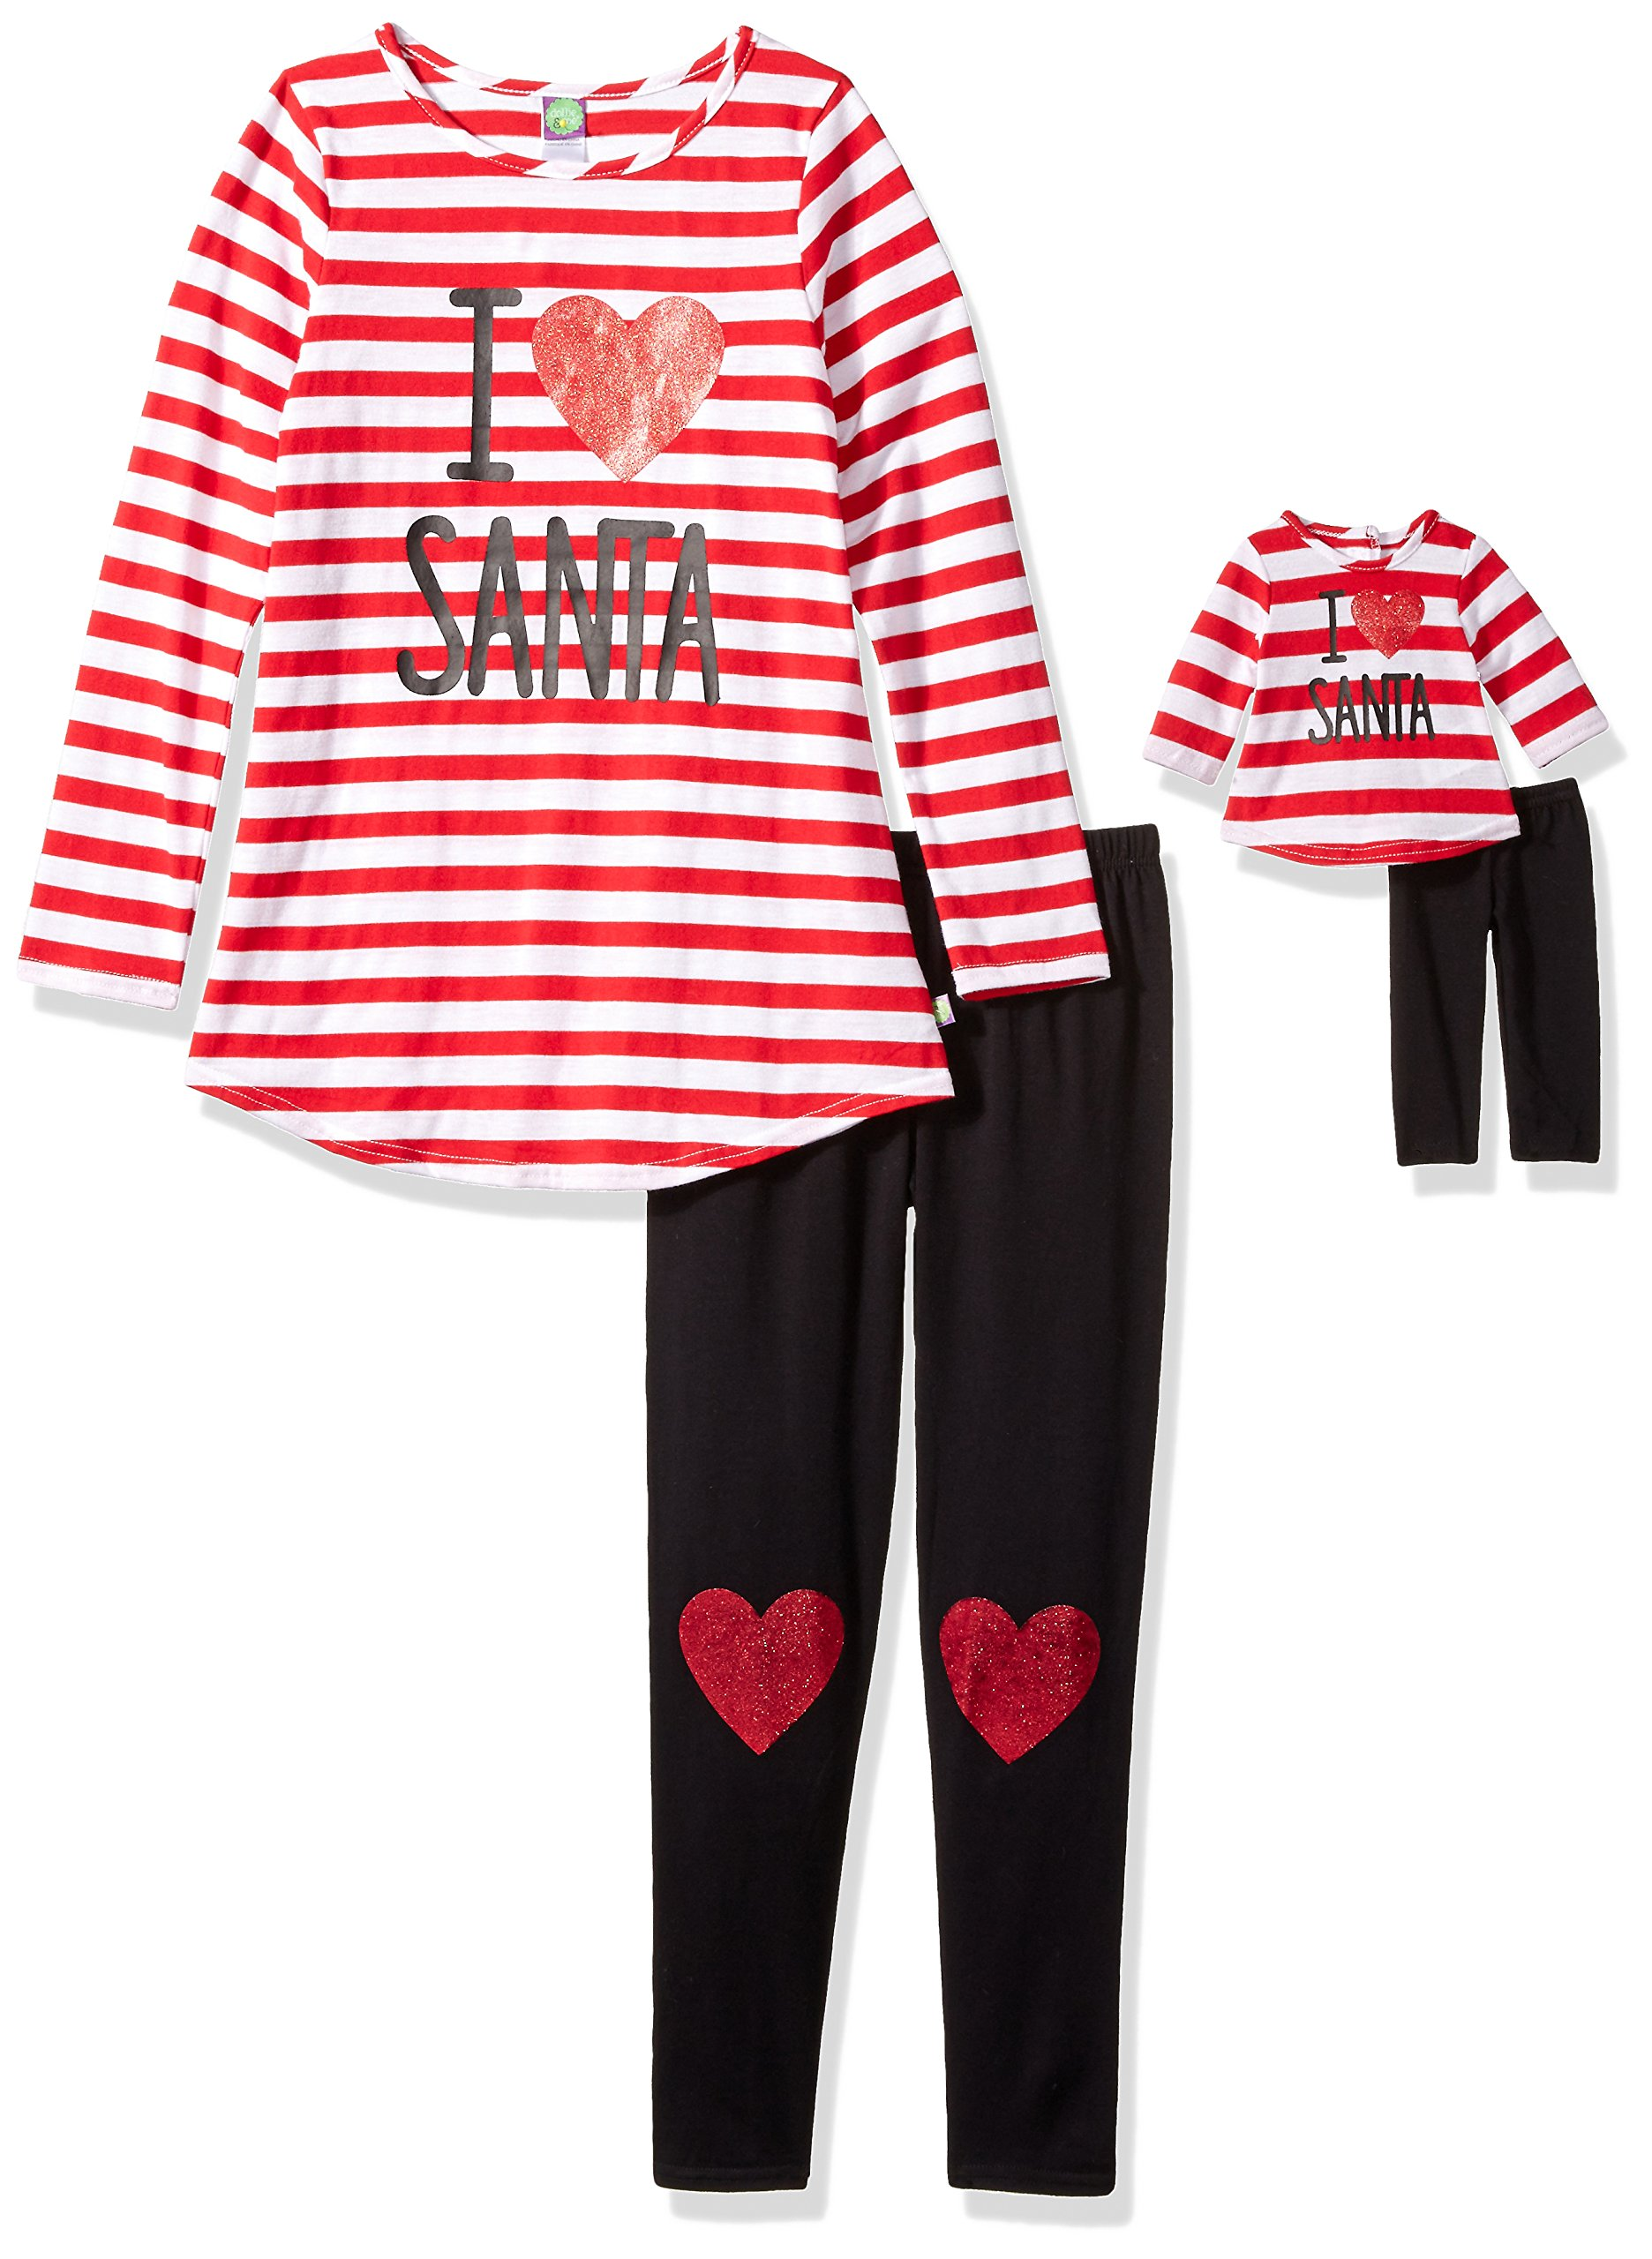 Dollie & Me Big Girls' I Love Santa Striped Legging Set and Matching Doll Outfit, Red/White/Black, 14